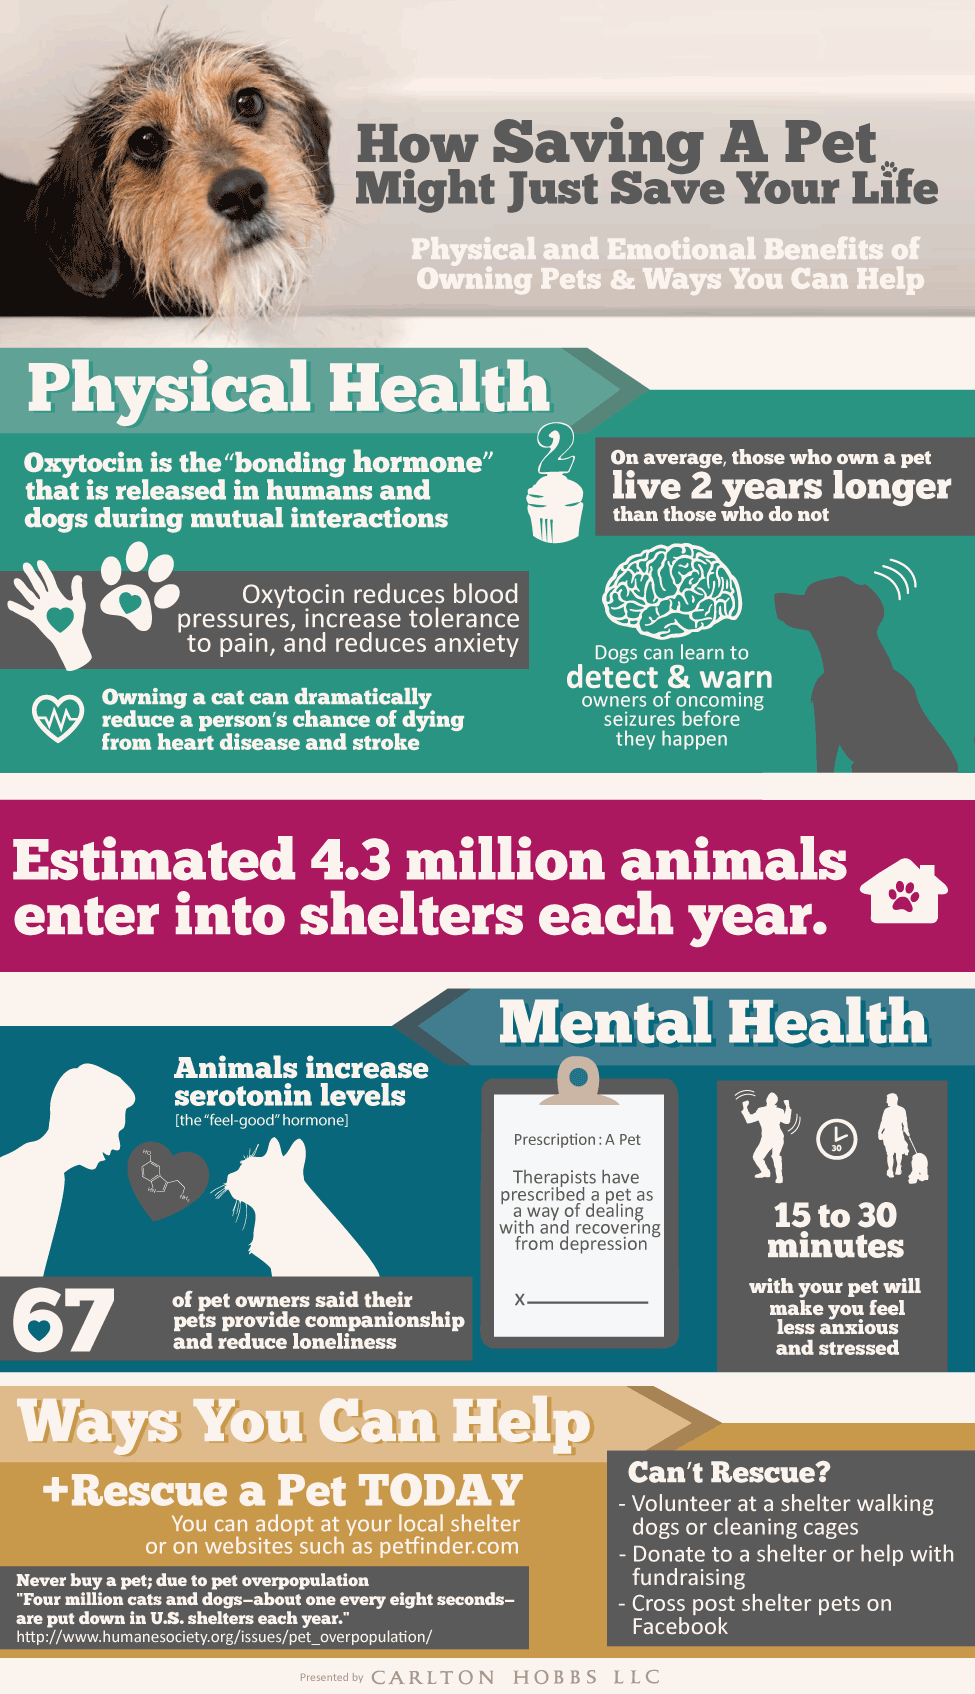 How Saving A Pet Might Just Save Your Life